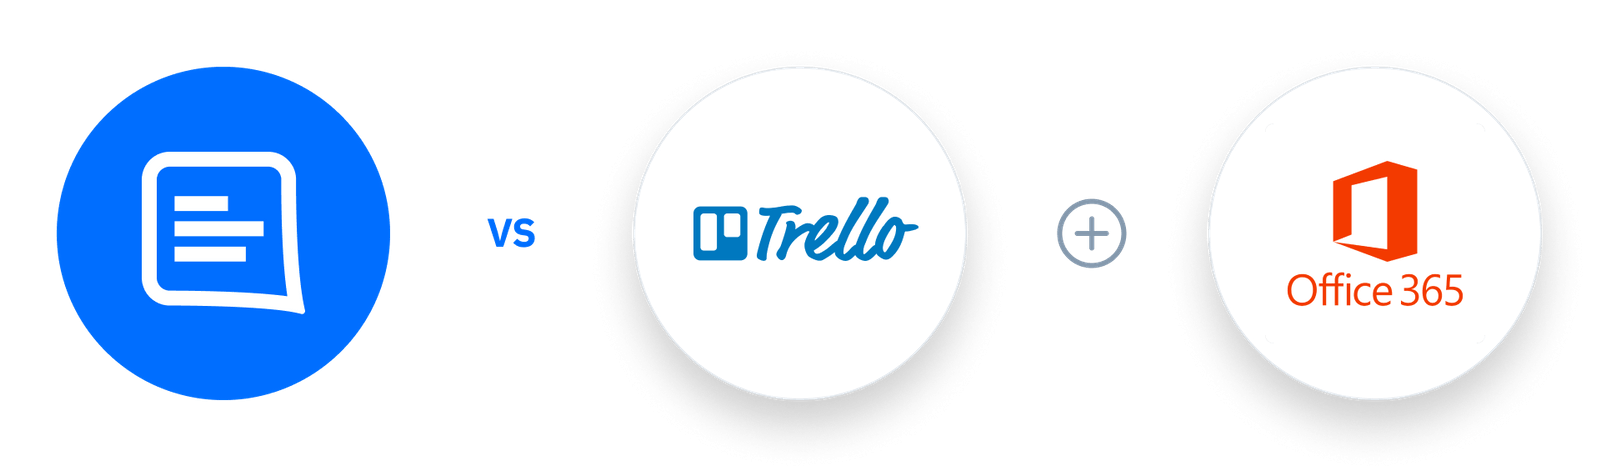 GC logo Vs Trello + Office 365 logos